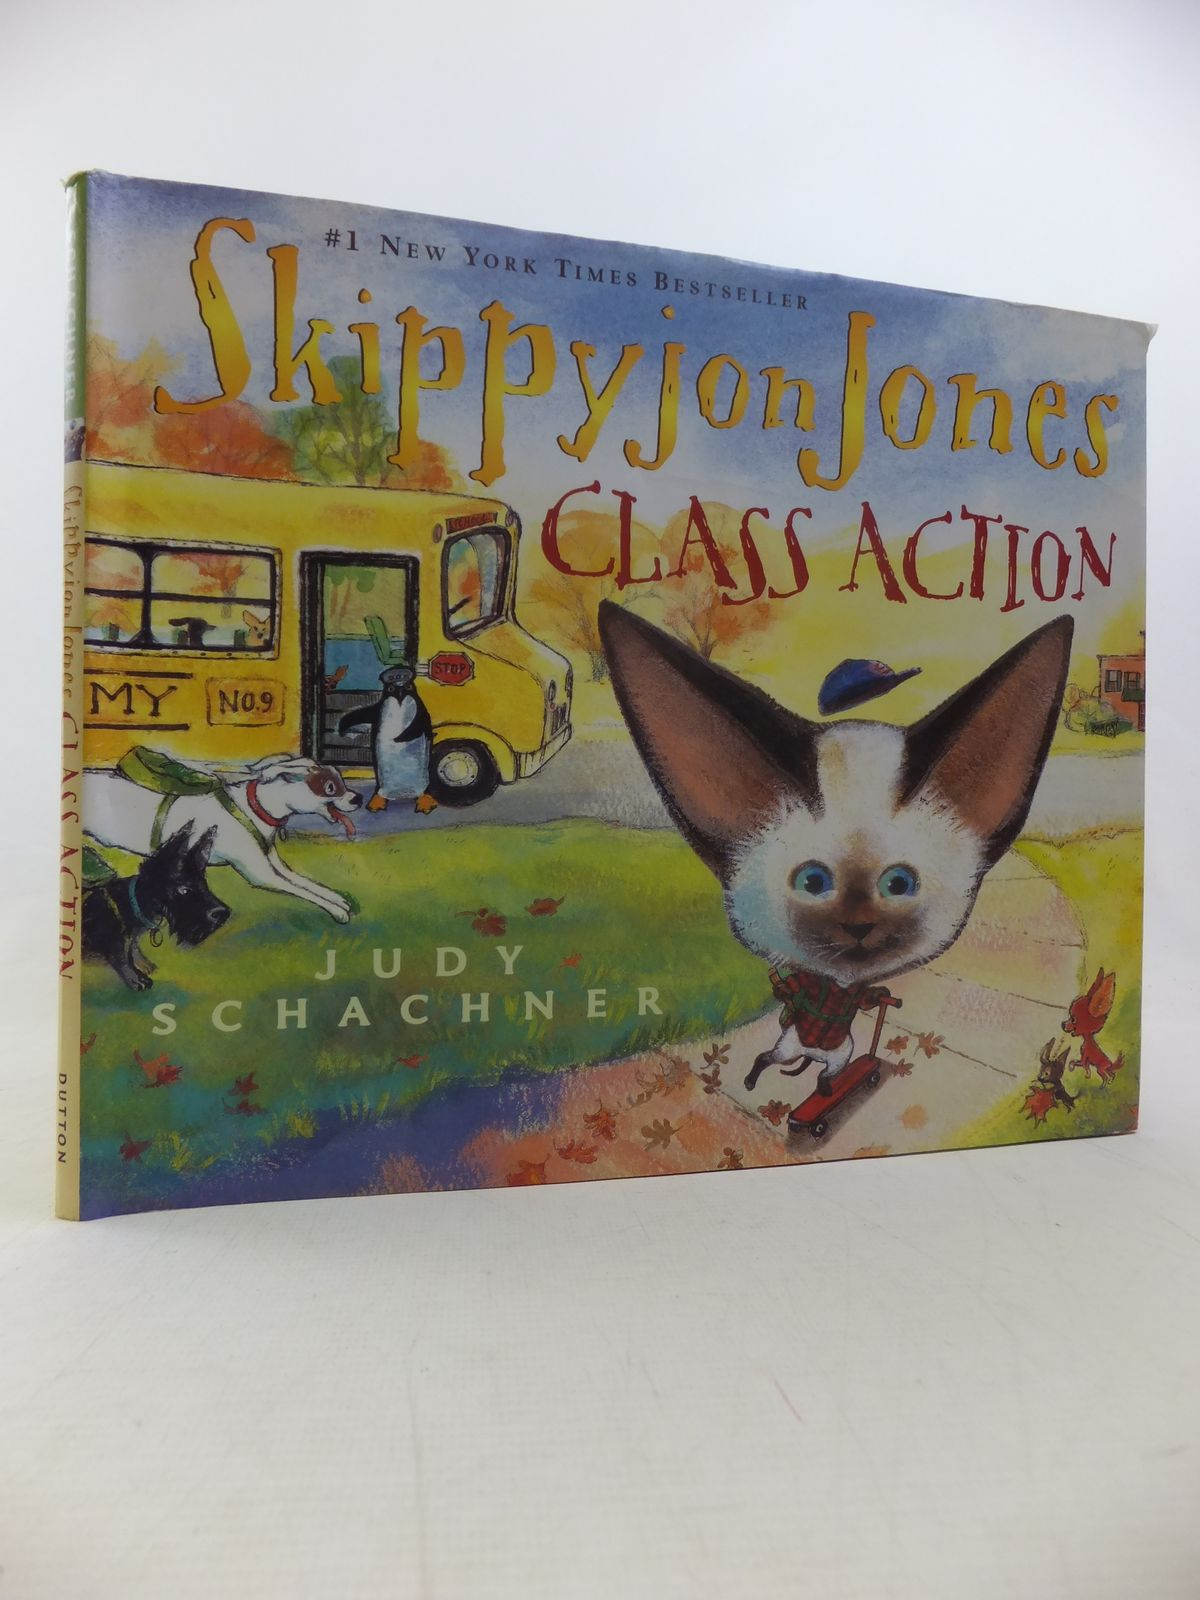 Photo of SKIPPYJON JONES: CLASS ACTION written by Schachner, Judy illustrated by Schachner, Judy published by Dutton Children's Books (STOCK CODE: 1811221)  for sale by Stella & Rose's Books